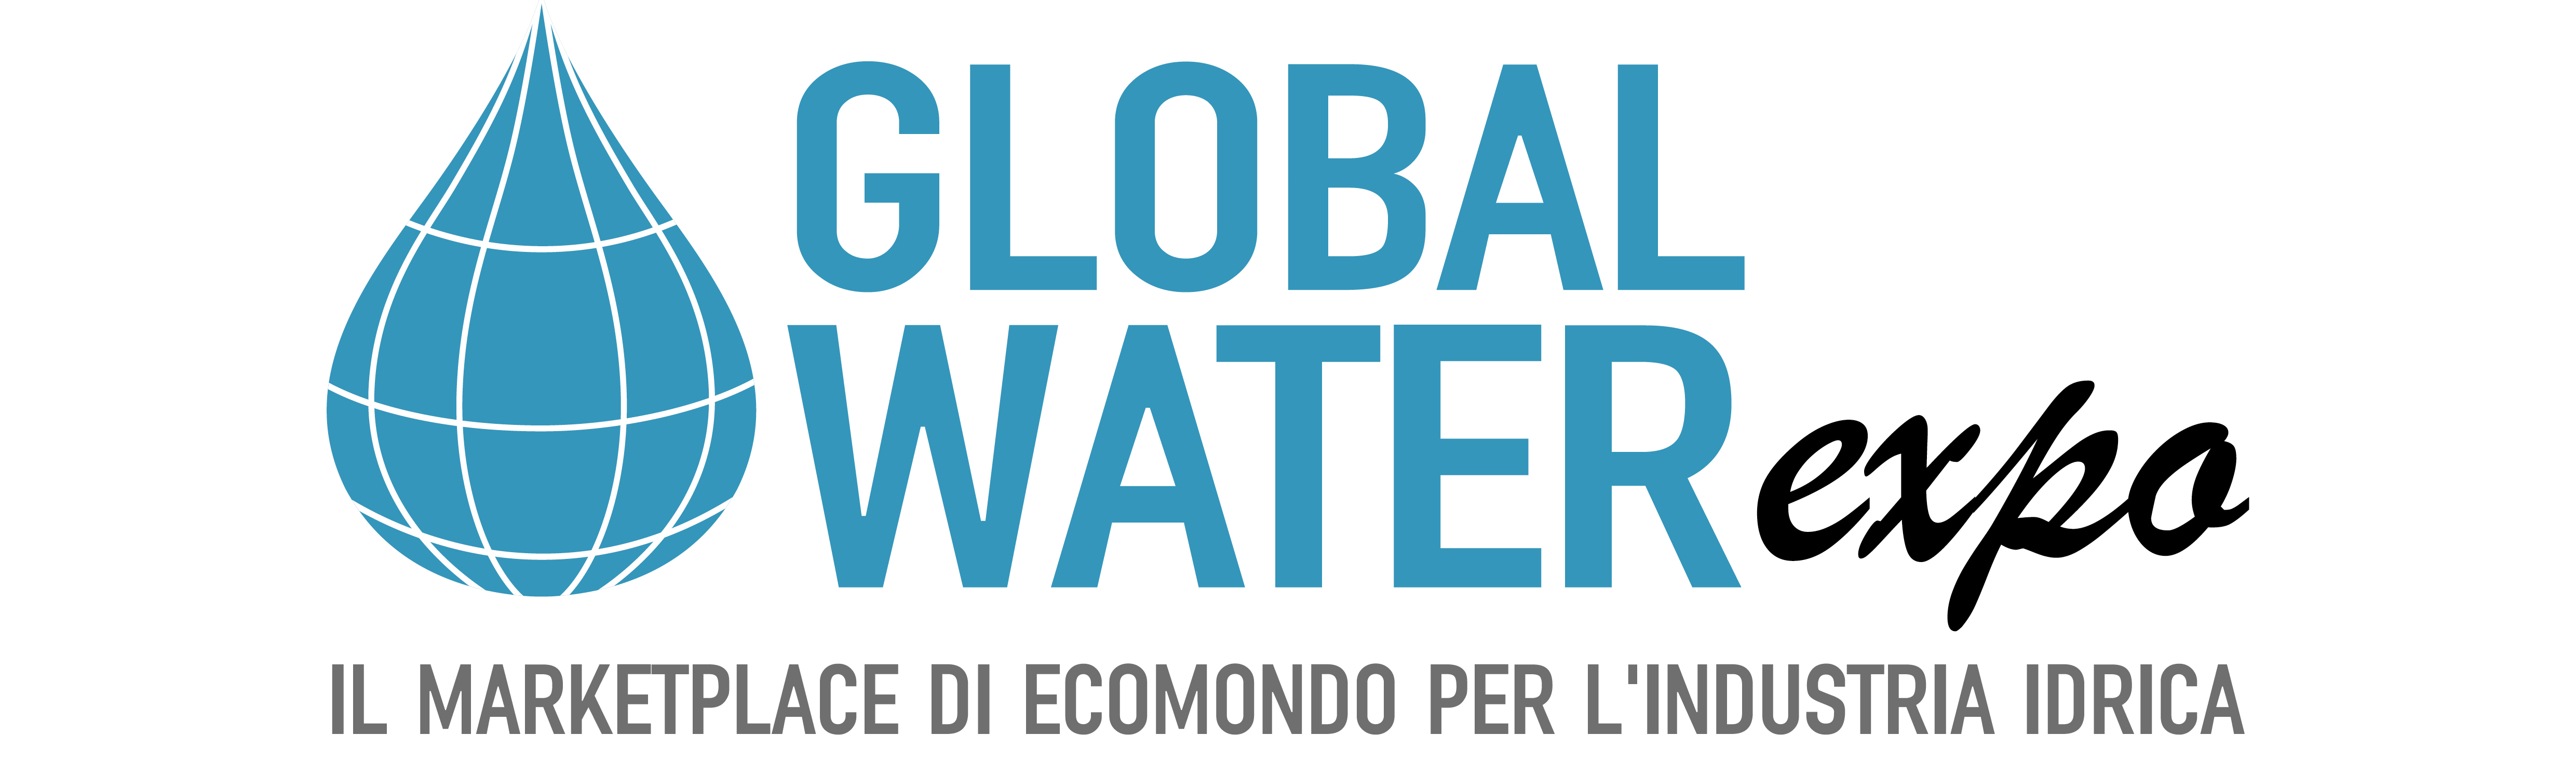 global-water-expo